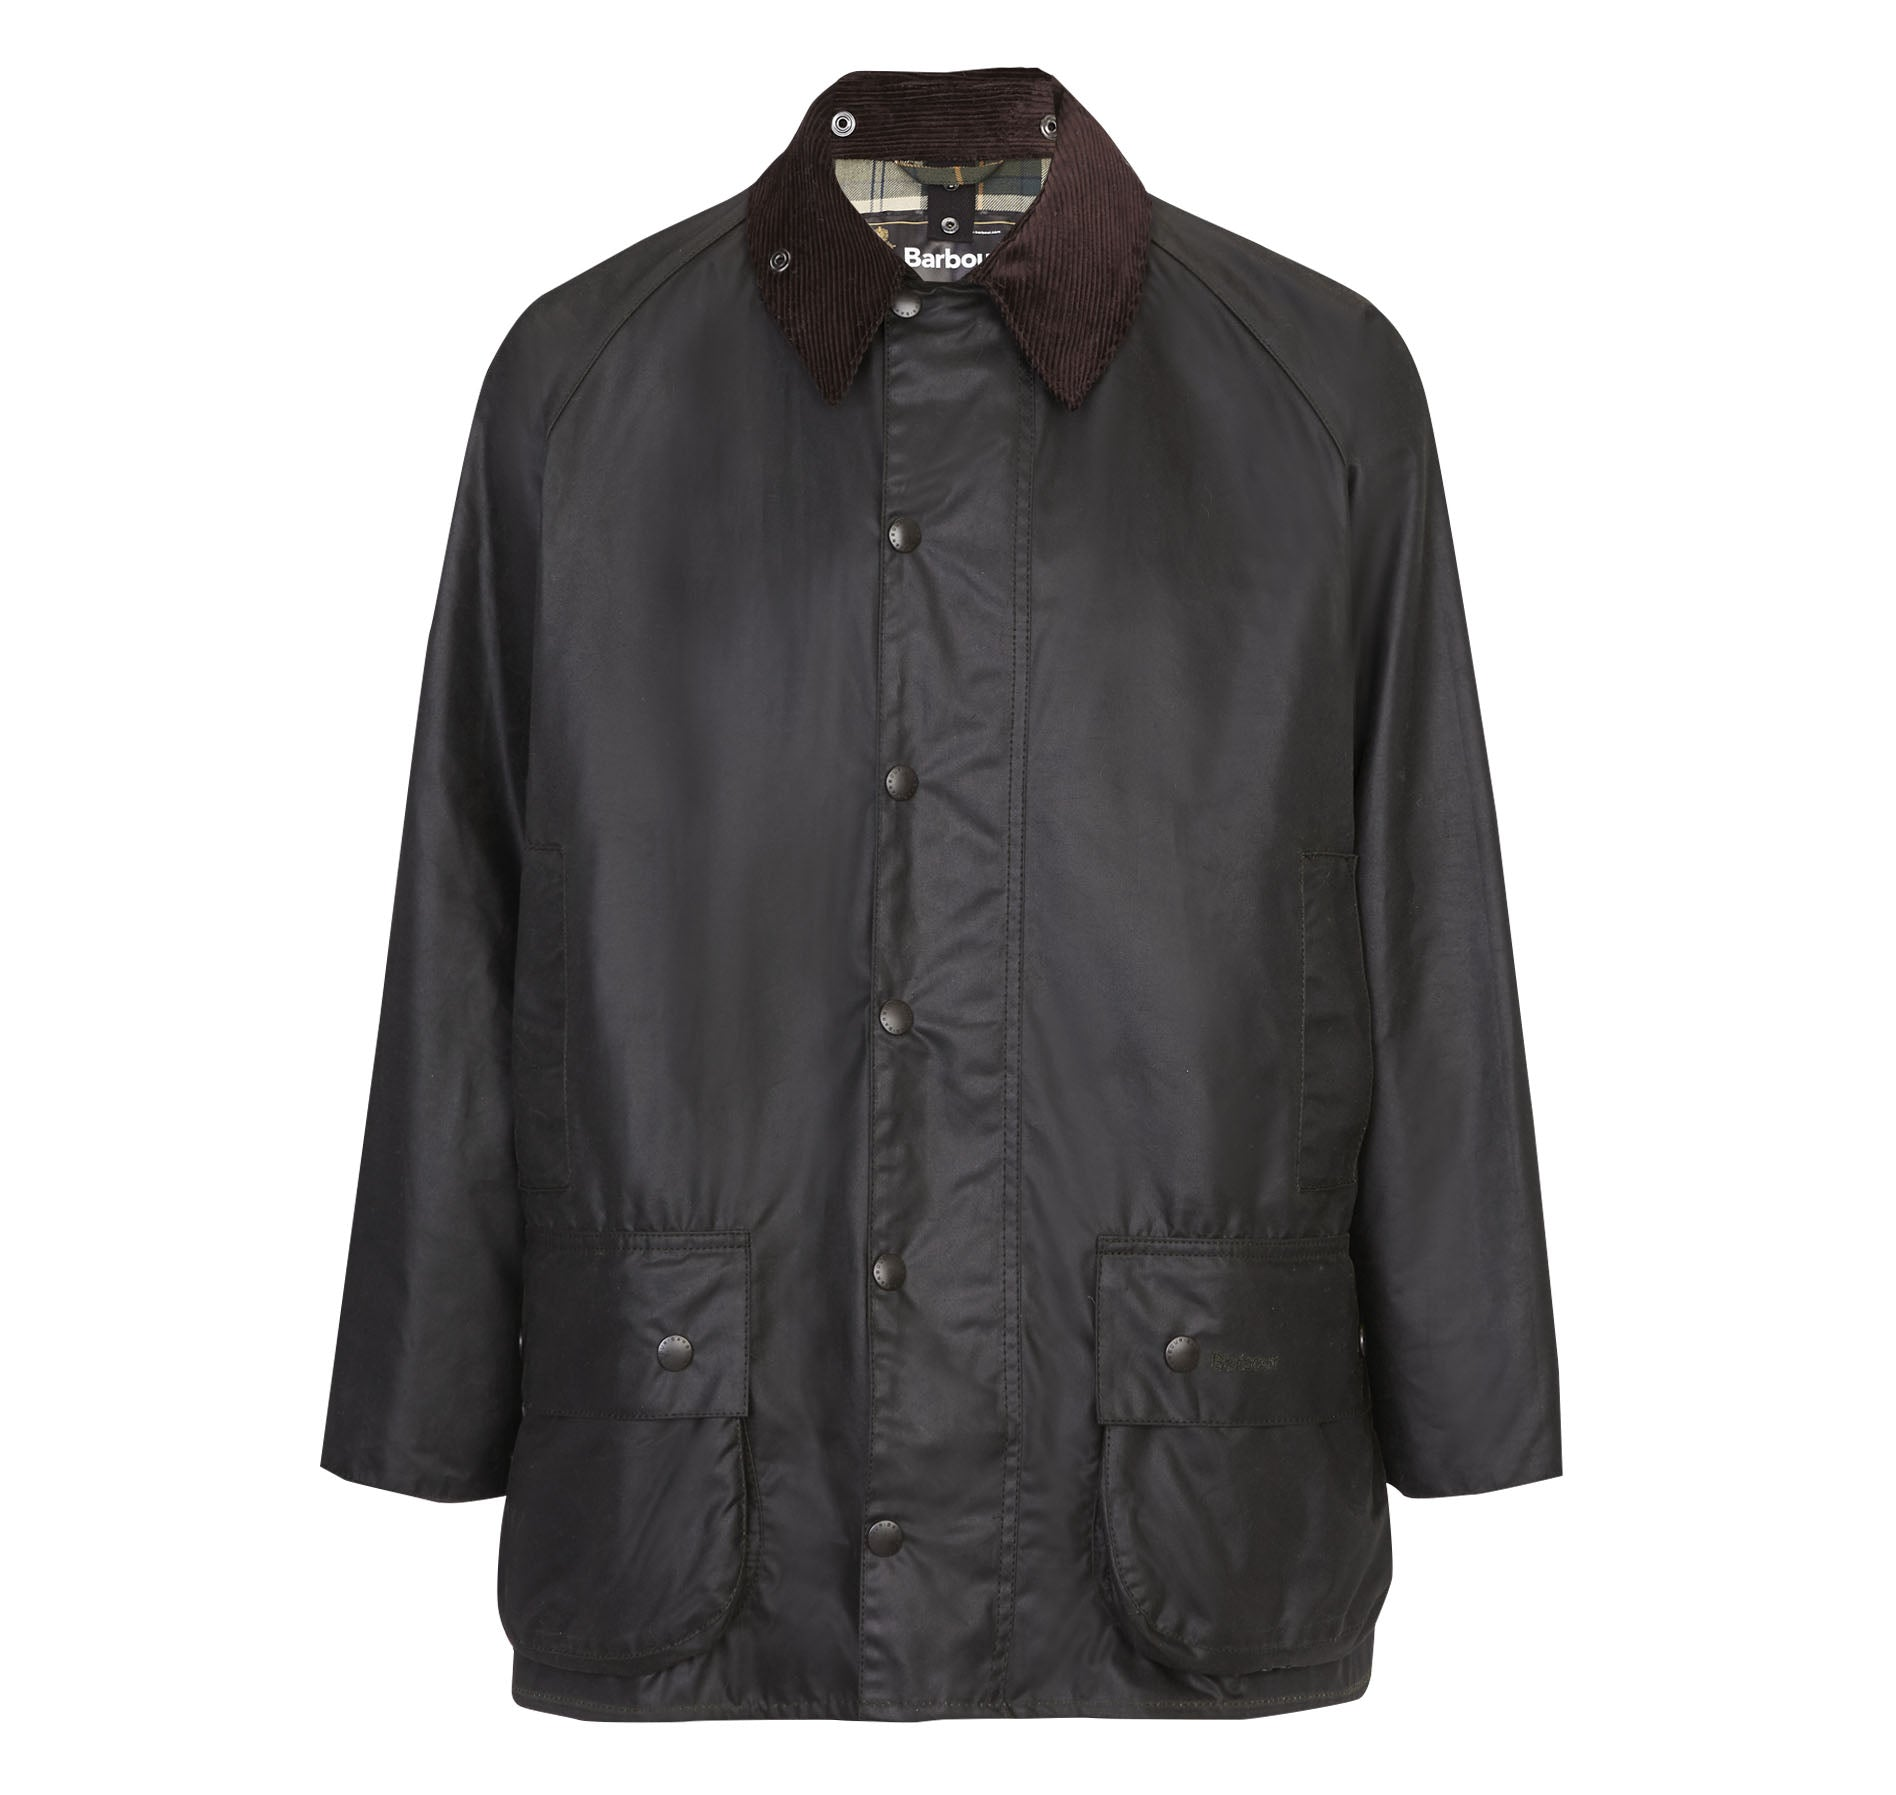 Barbour Beaufort Wax Jacket for Men in Sage